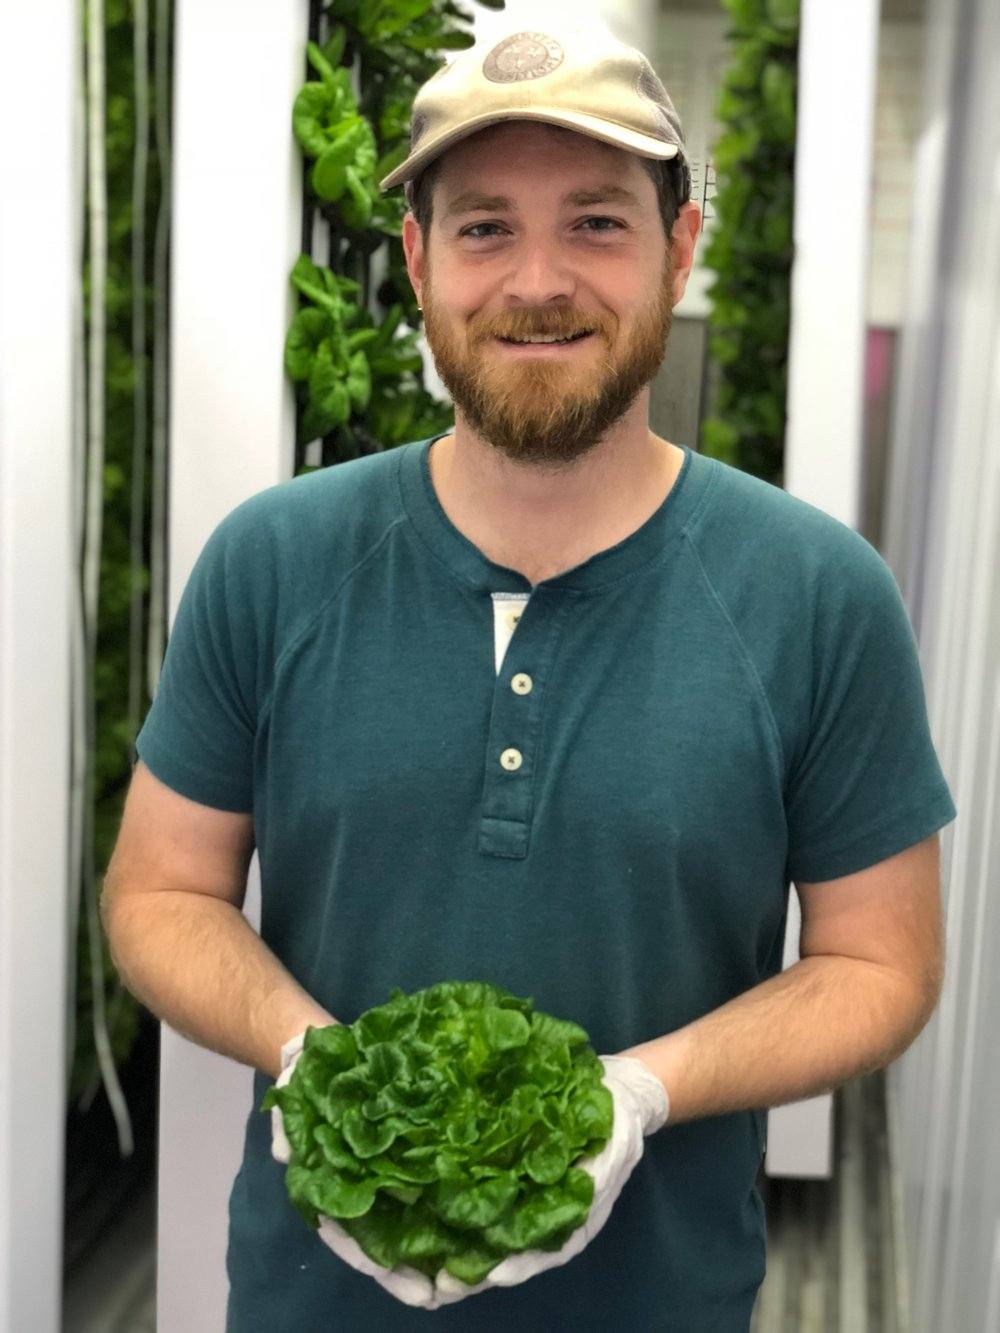 """""""We're excited to be offering this great product to our customers just a few feet from where it was grown,"""" says David Goodman of Rally House Farms."""